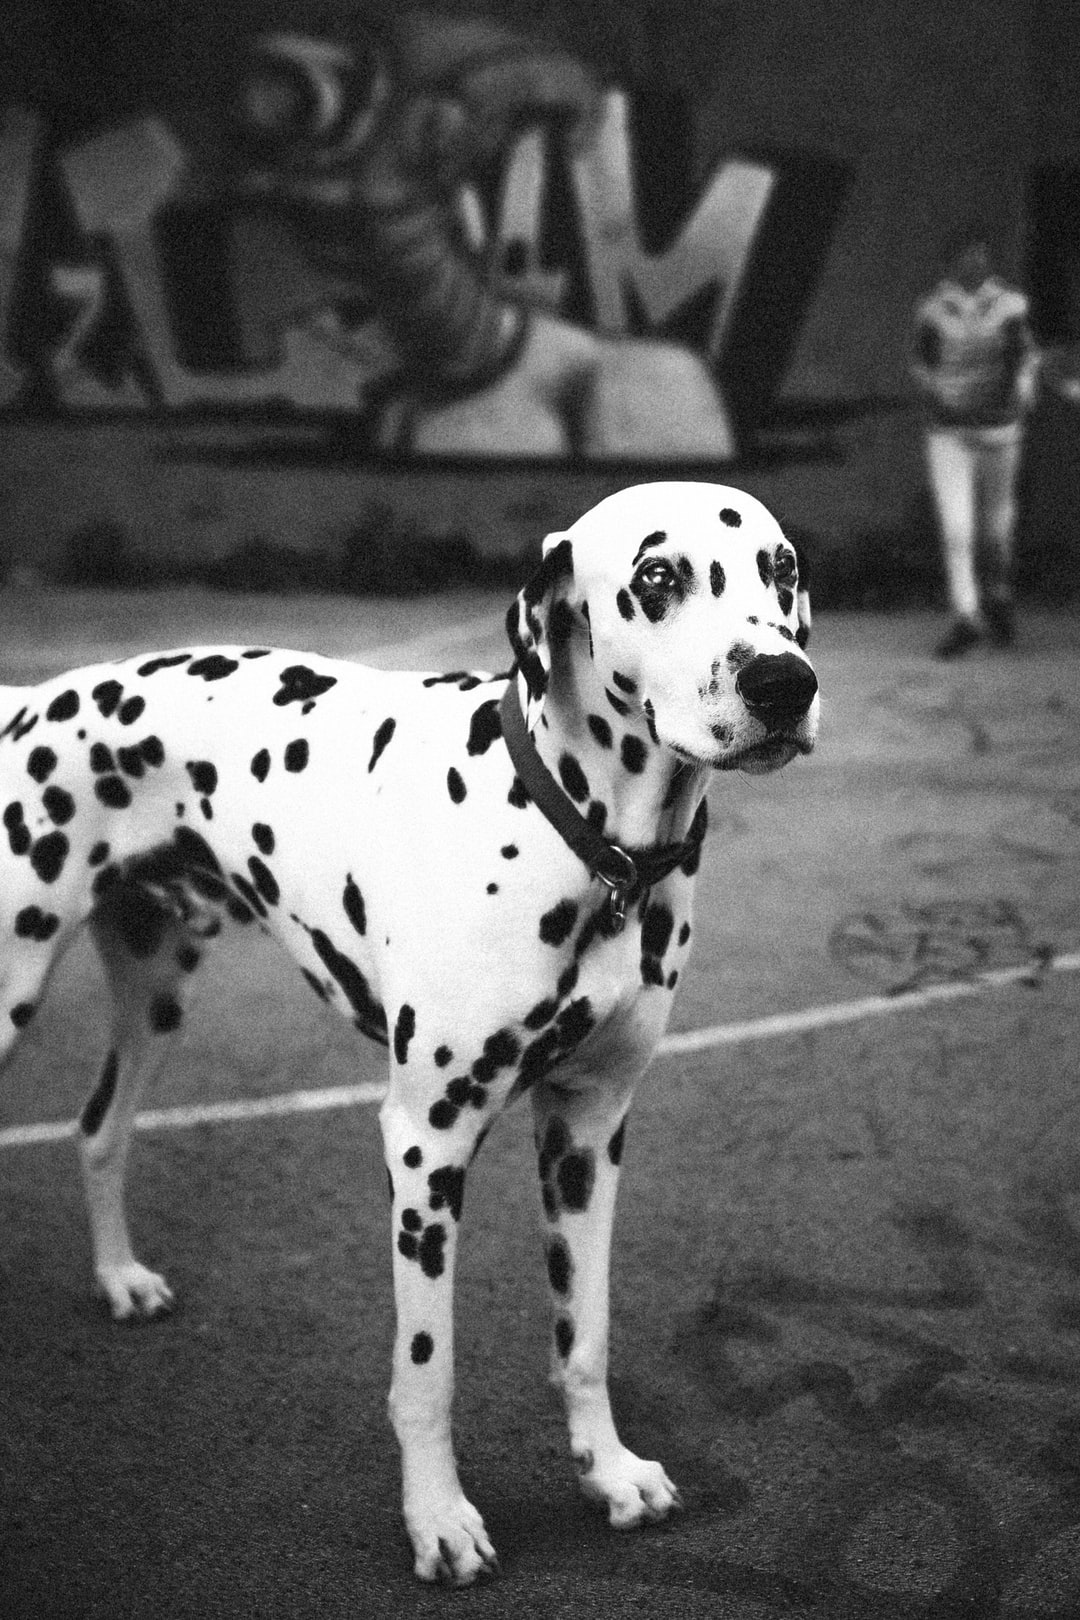 In my recent visit to Ljubljana I photographed this humble Dalmatian called Buddha, whose owner was the dad of the girl in the distance. The father explained to us that his daughter was autist and that dogs are commonly used to help coping with mental health challenges. I believe that one can see in Buddha's deep eyes his patience and respect towards the family.